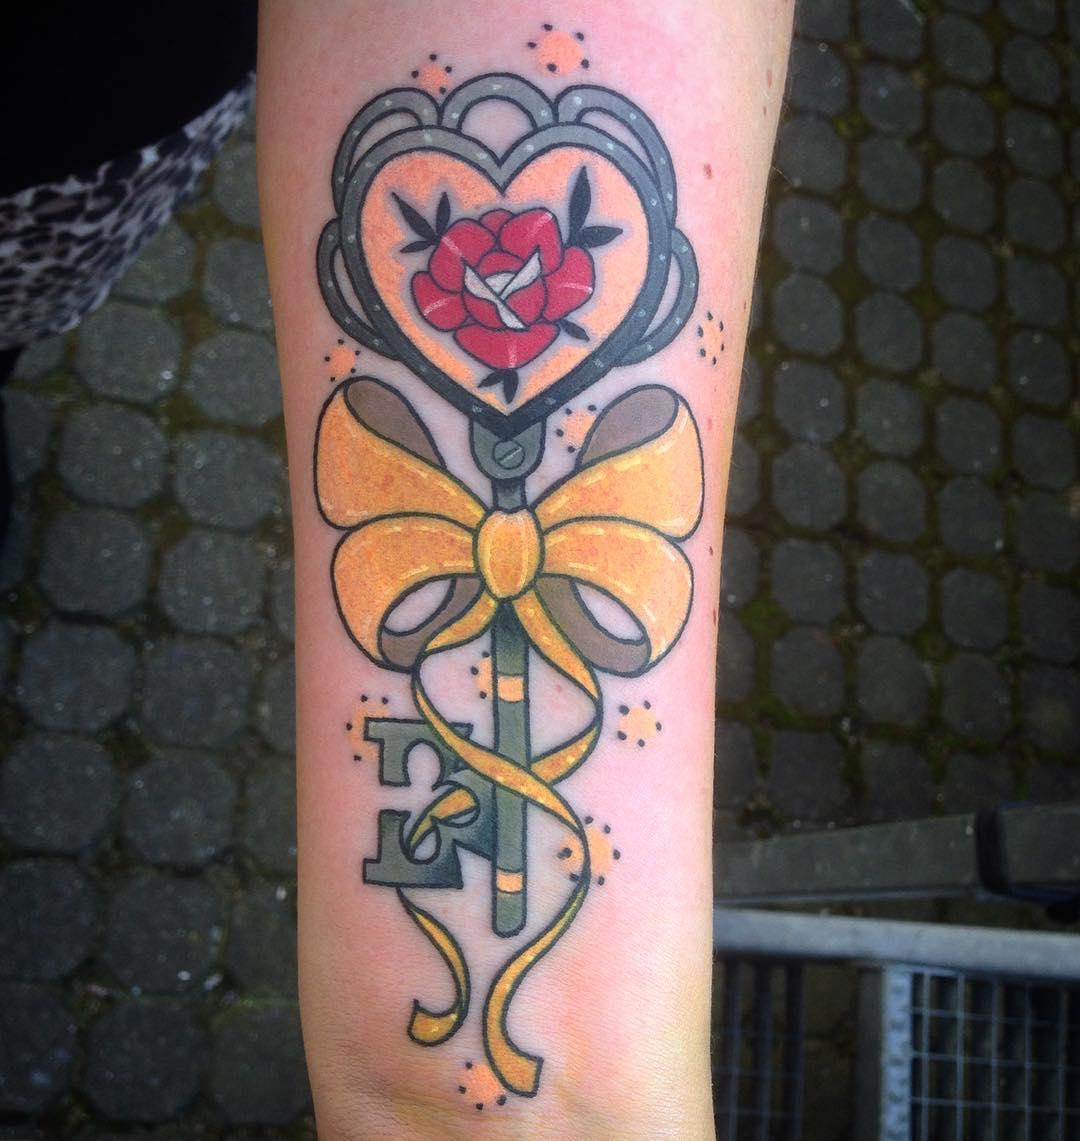 ribbon and key tattoo on hand